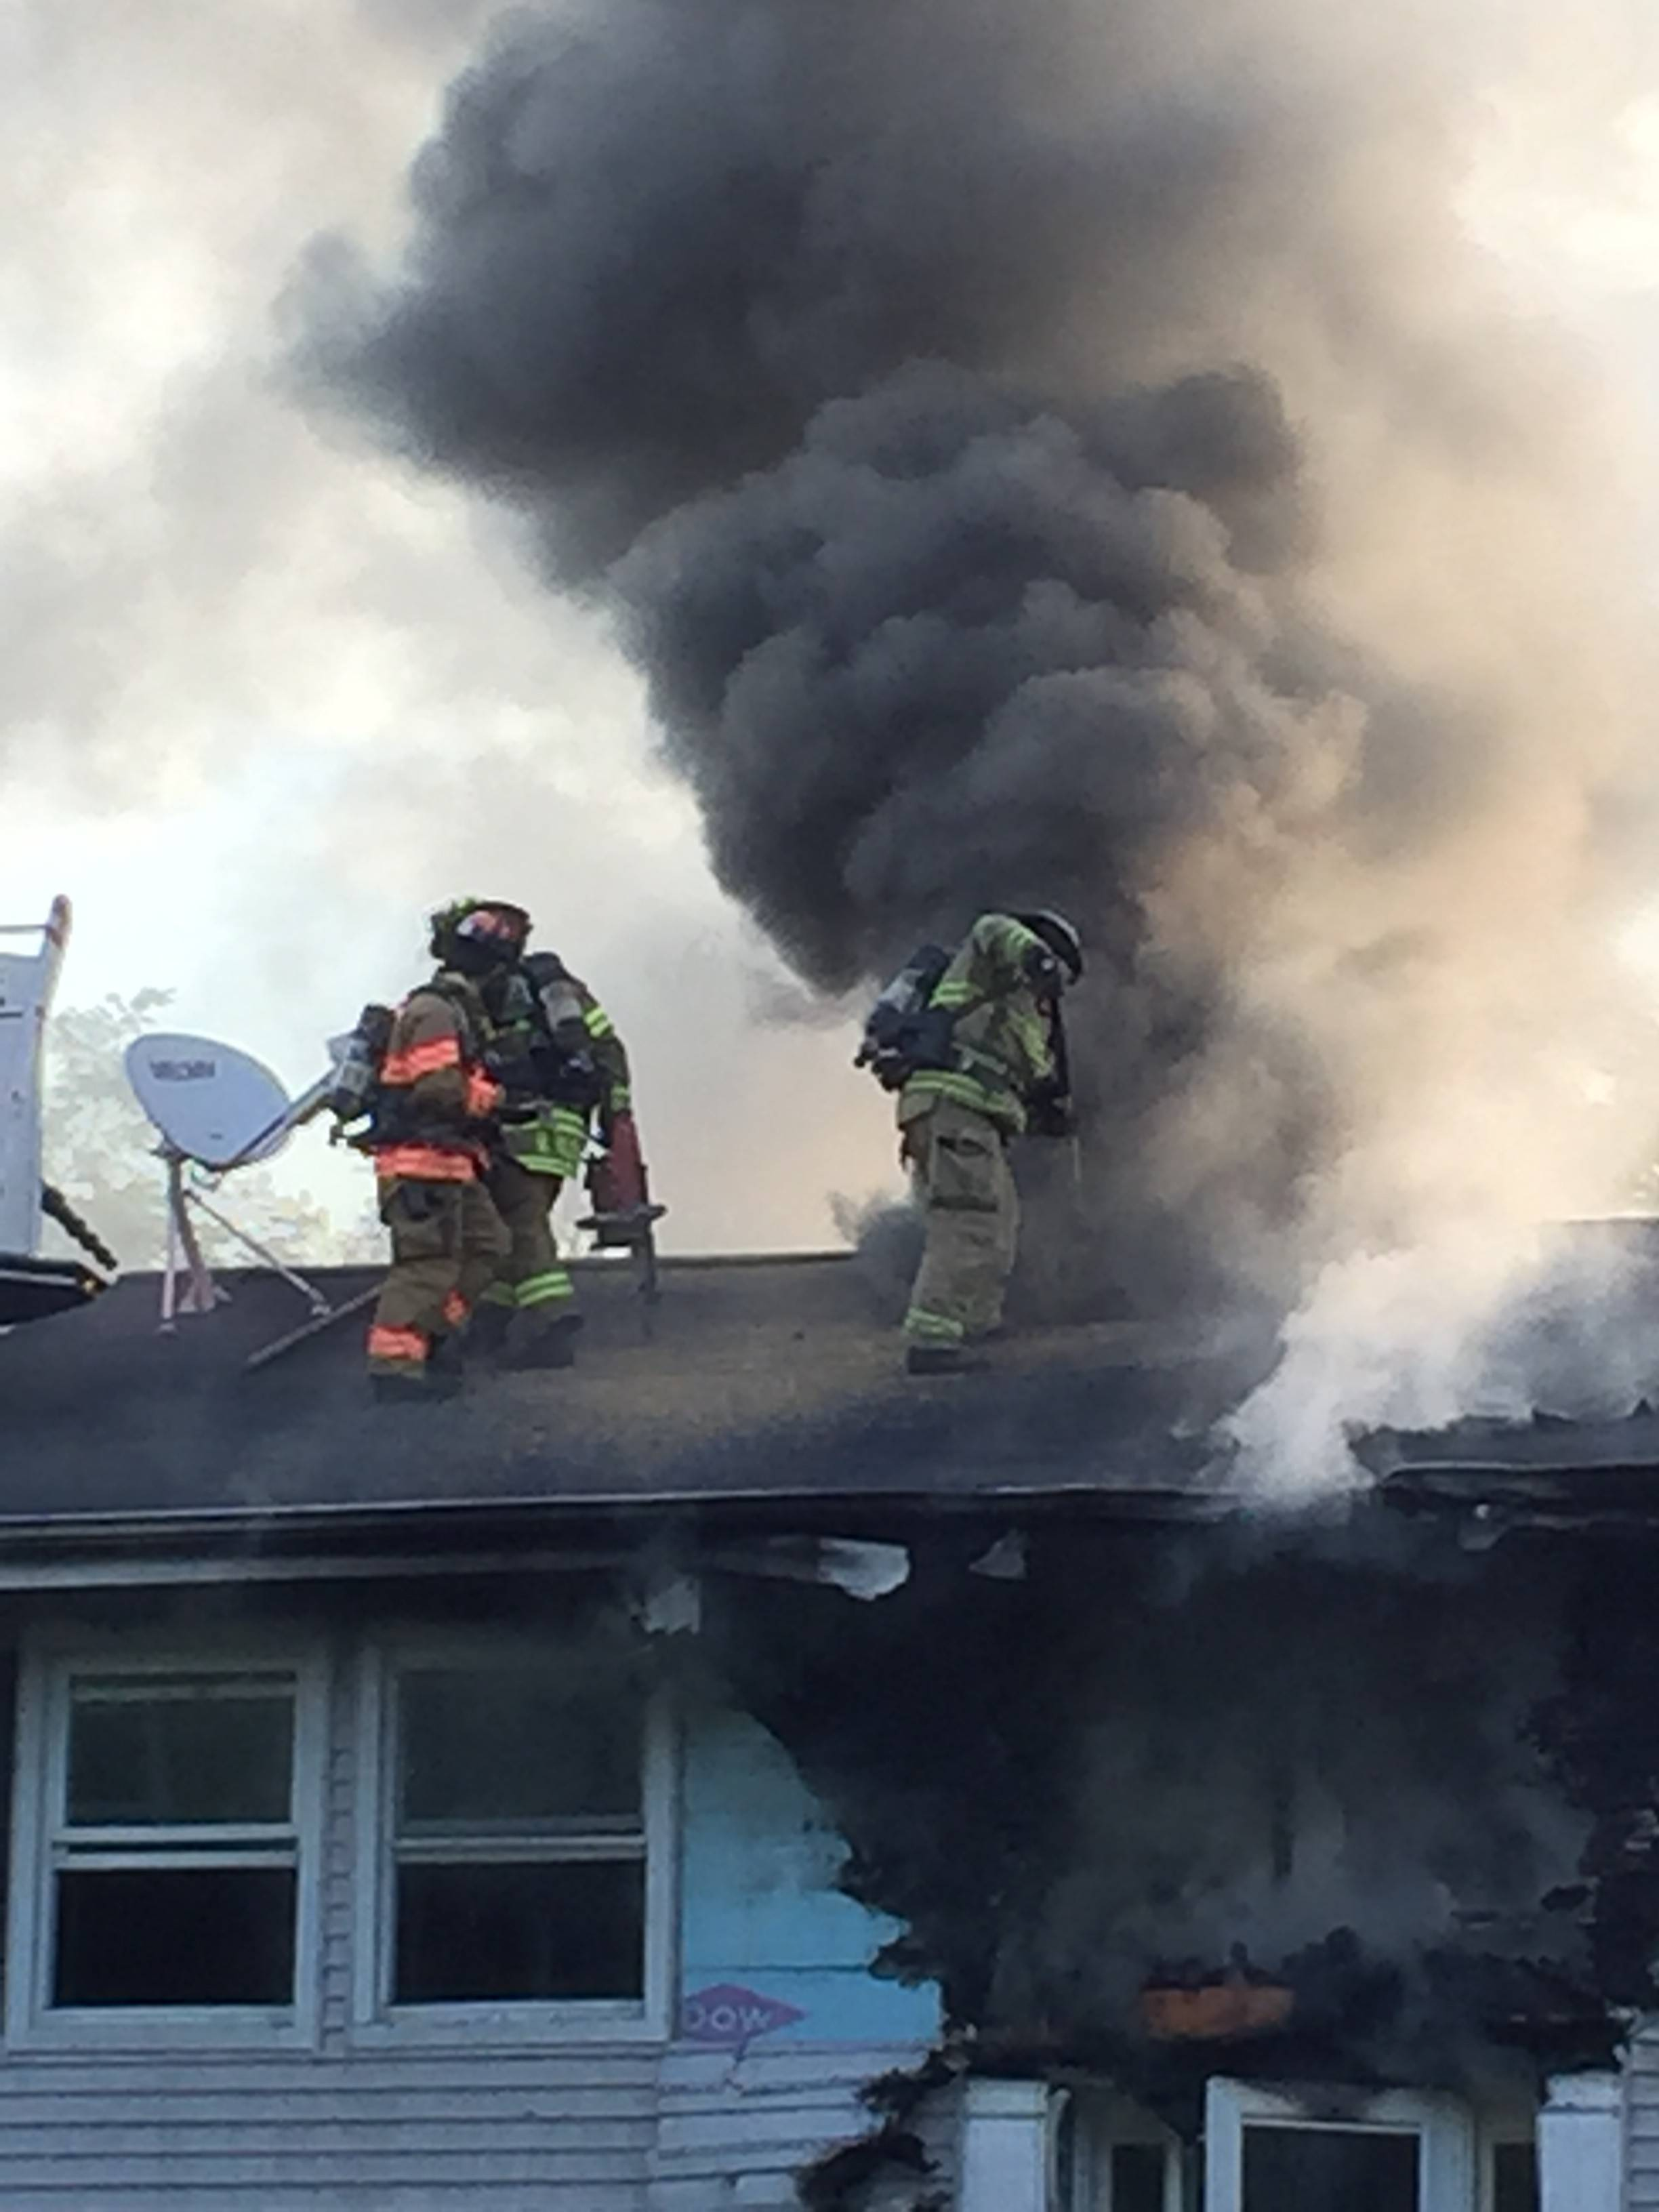 Once a common firefighting tactic, extinguishing residential fires from rooftops can be more dangerous for firefighters, studies now suggest.